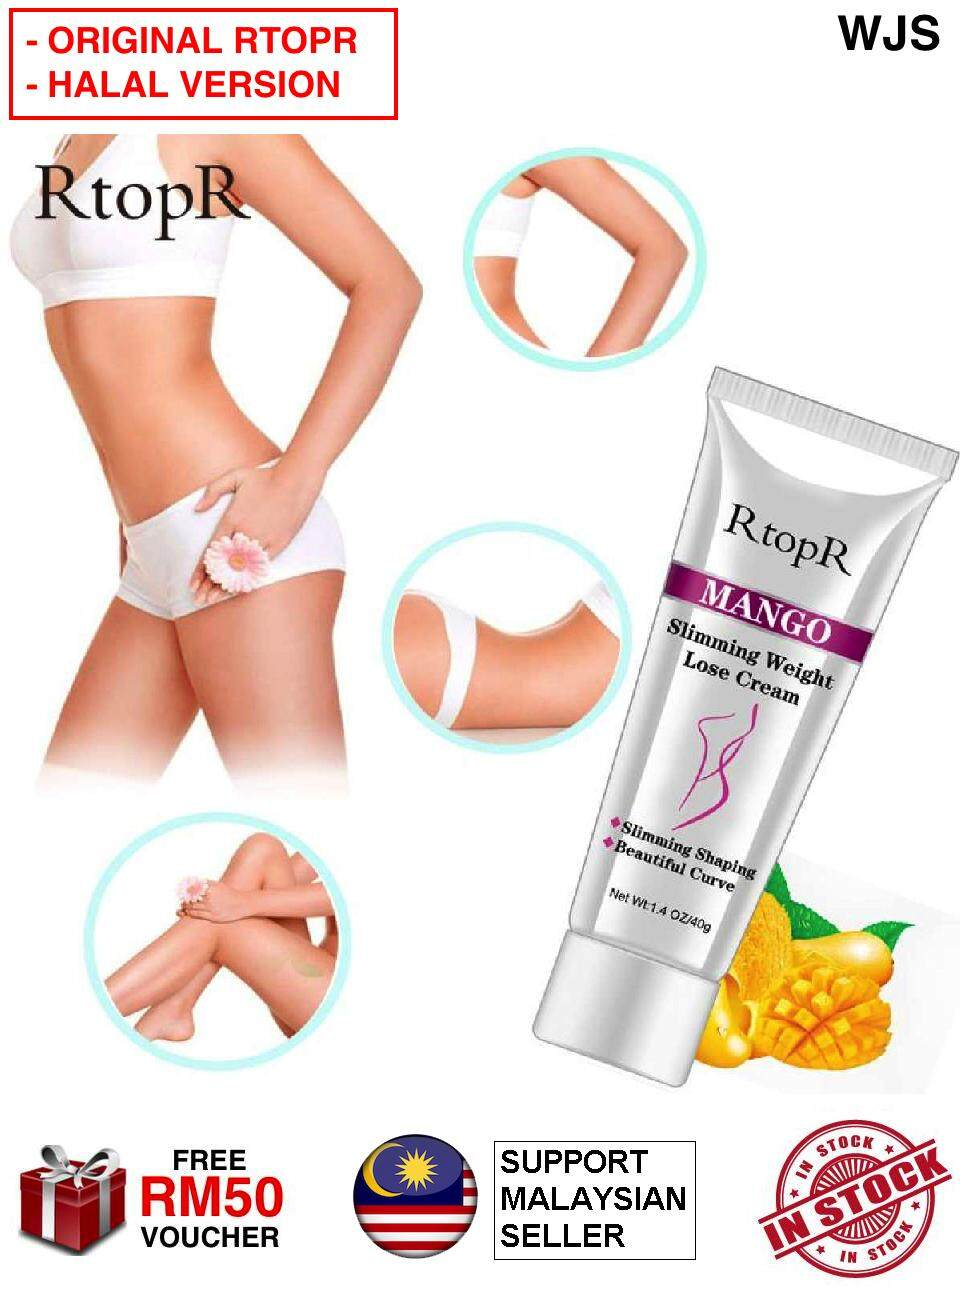 (HALAL VERSION) WJS RtopR Slimming Cream Anti Cellulite Fat Burner Cream Slimming Product Weight Loss Whitening Hot Body Cream Safety Moisturizer Thin Leg Arm Belly Waist Thigh Natural Pure Beauty 40g [FREE RM 50 VOUCHER]